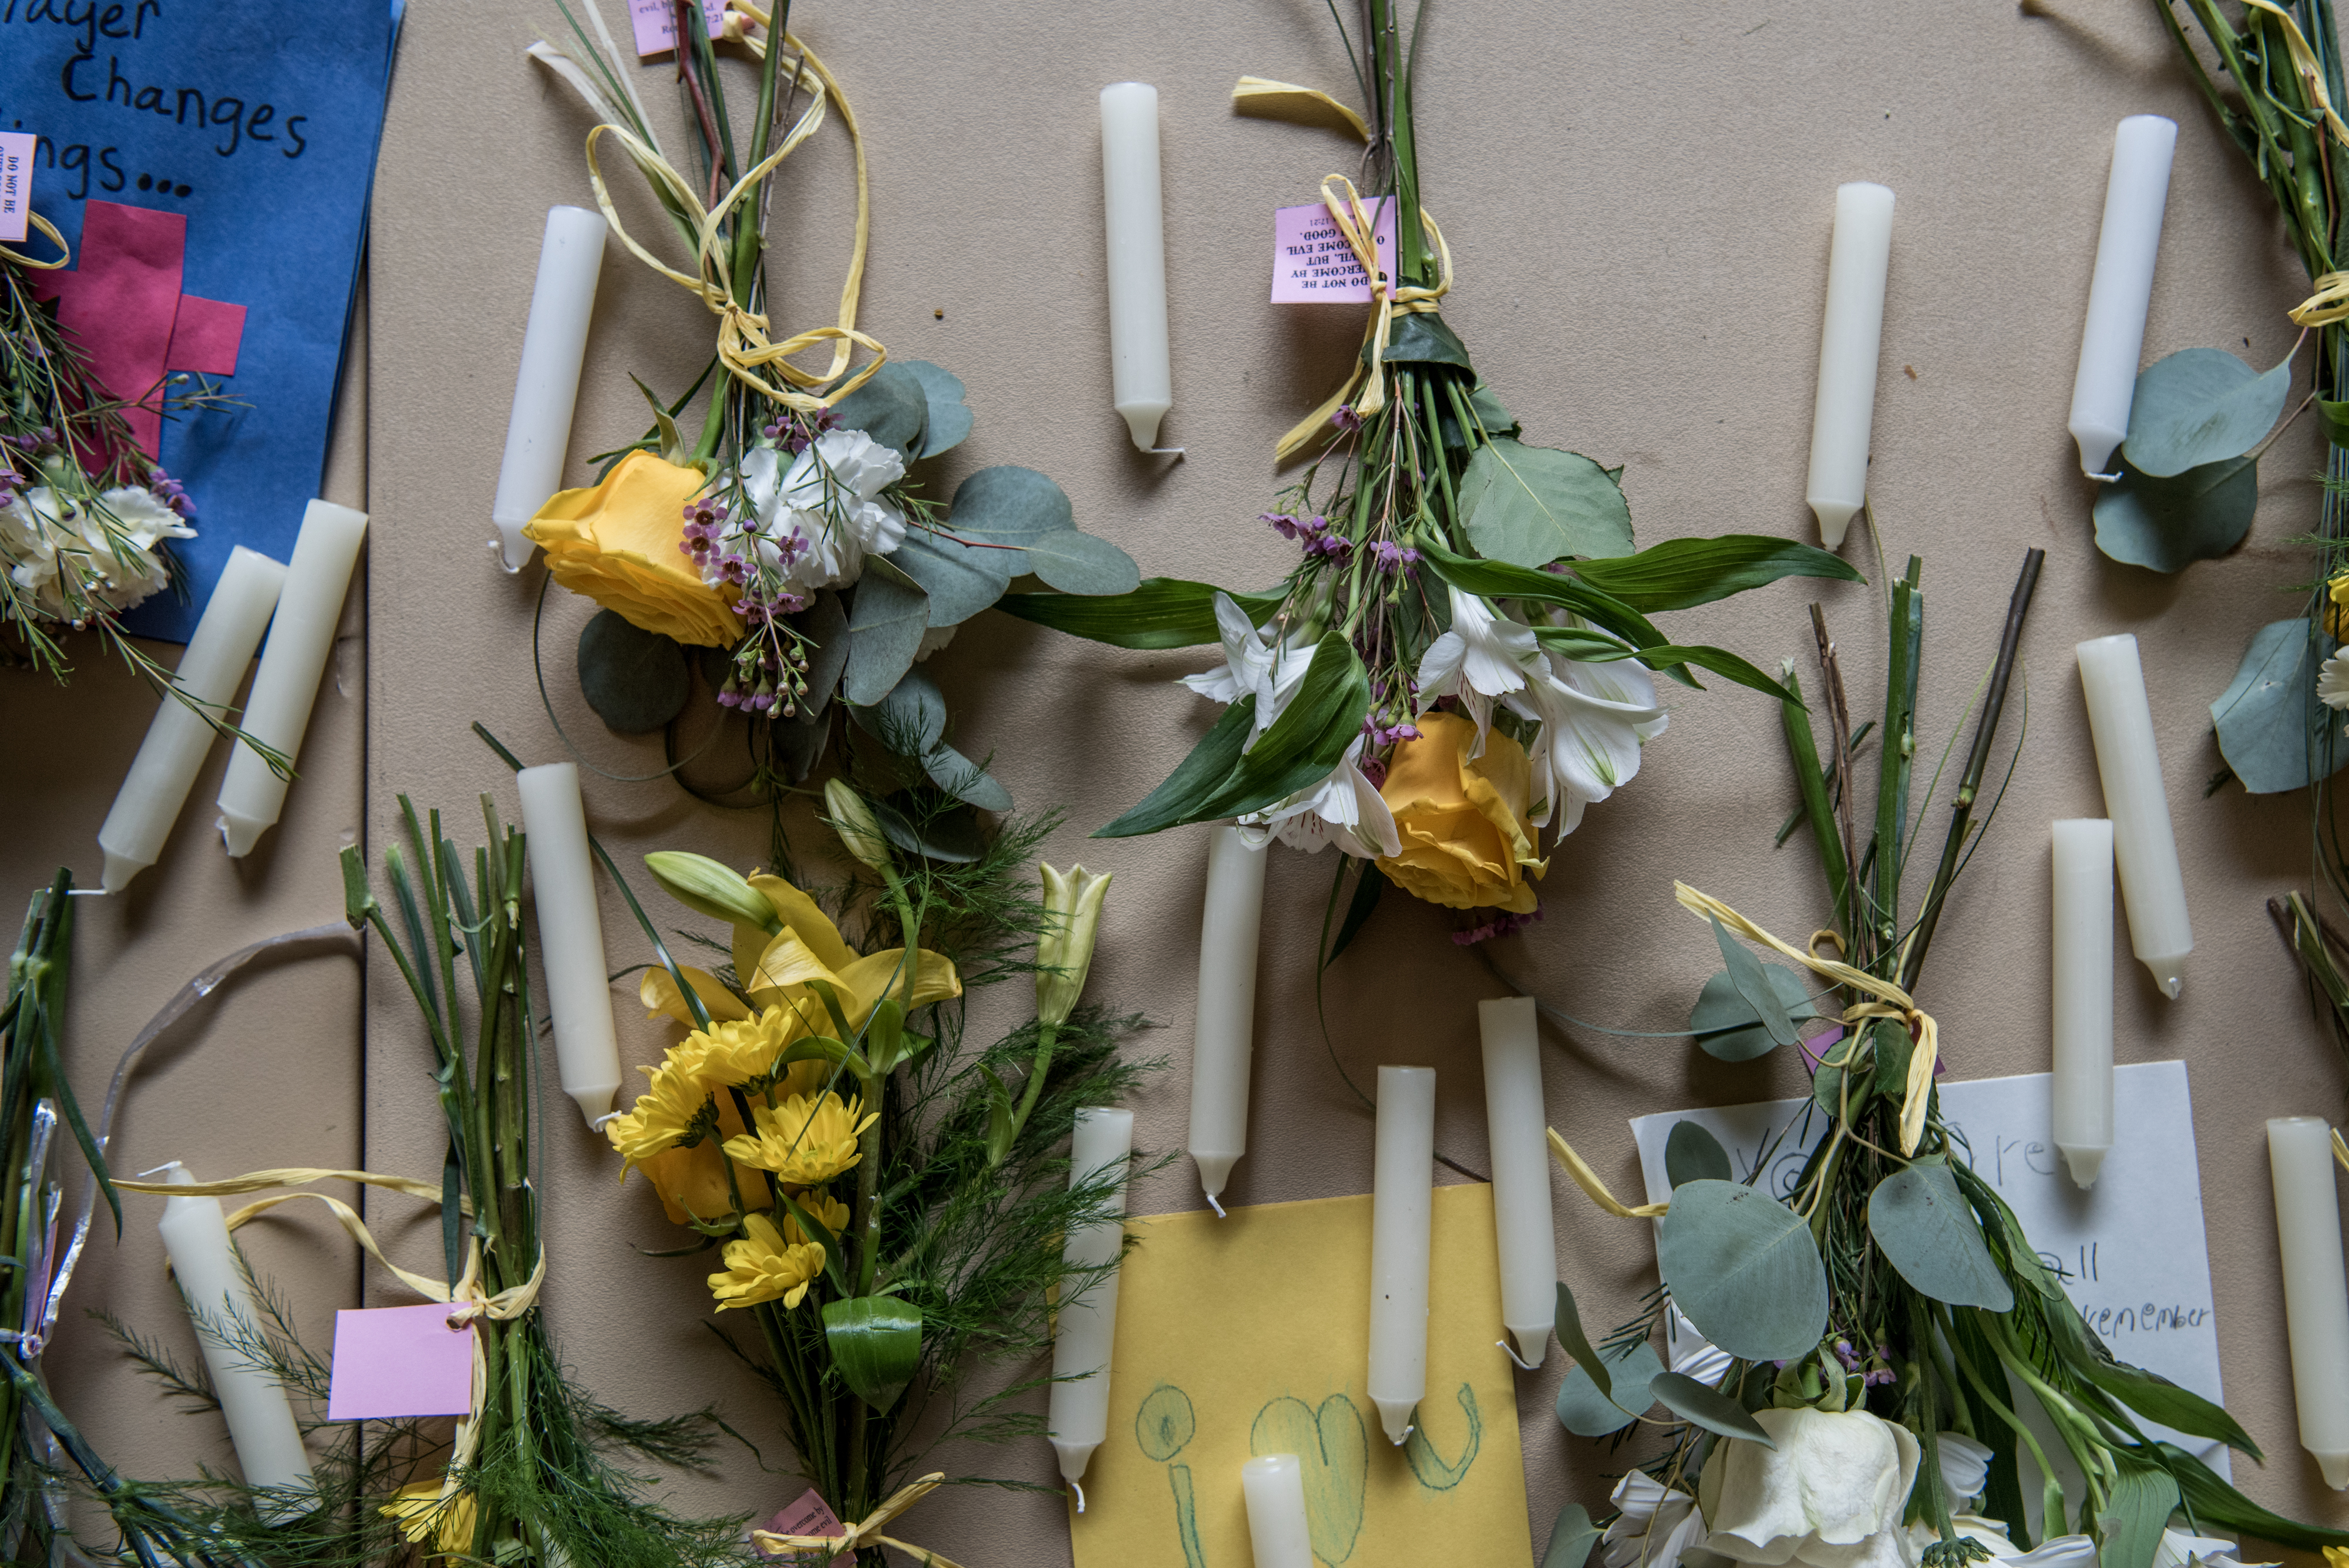 Small flower bouquets and candles provided by local Odessa residents are seen before a prayer vigil at the University of Texas of the Permian Basin (UTPB) for the victims of a mass shooting, September 1, 2019 in Odessa, Texas. (Photo by Cengiz Yar/Getty Images)